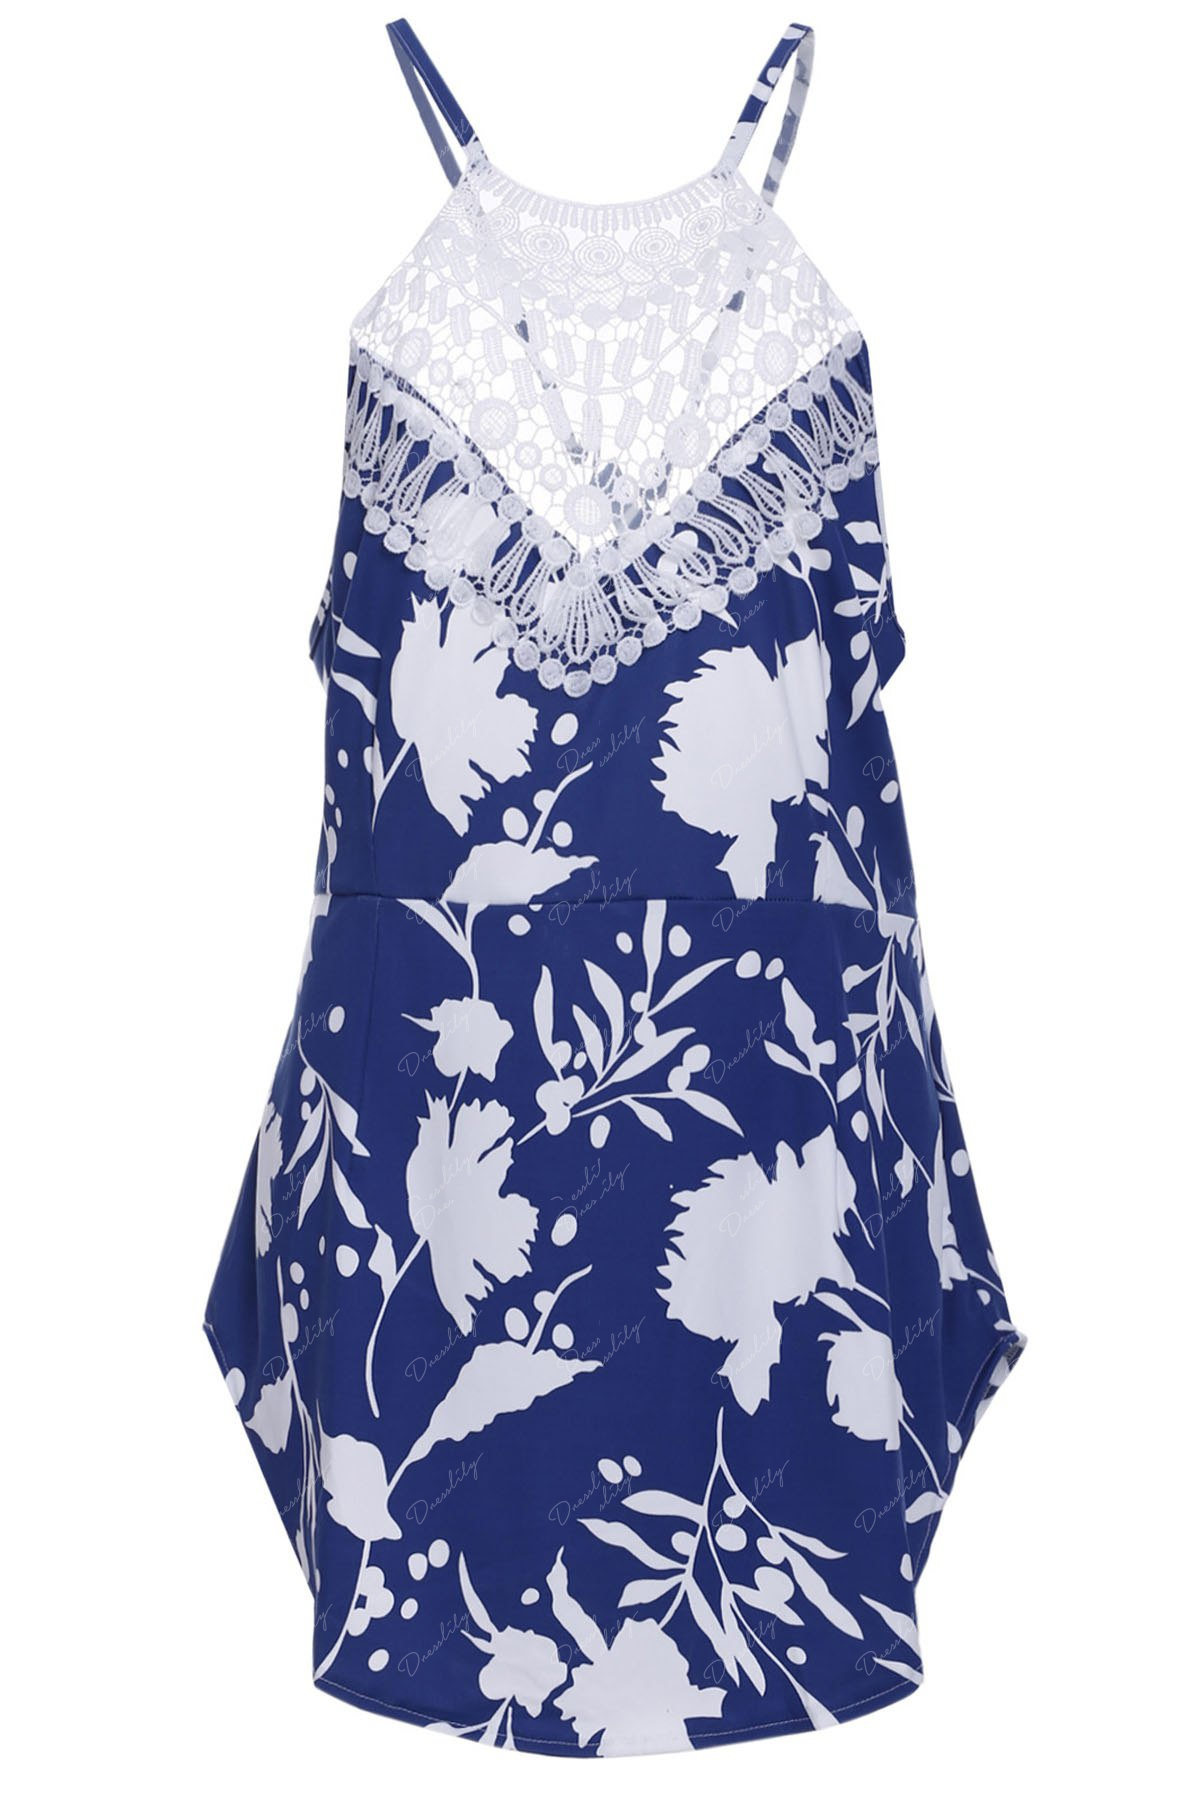 Chic Round Collar Sleeveless Backless Floral Print Women's Dress - BLUE/WHITE M